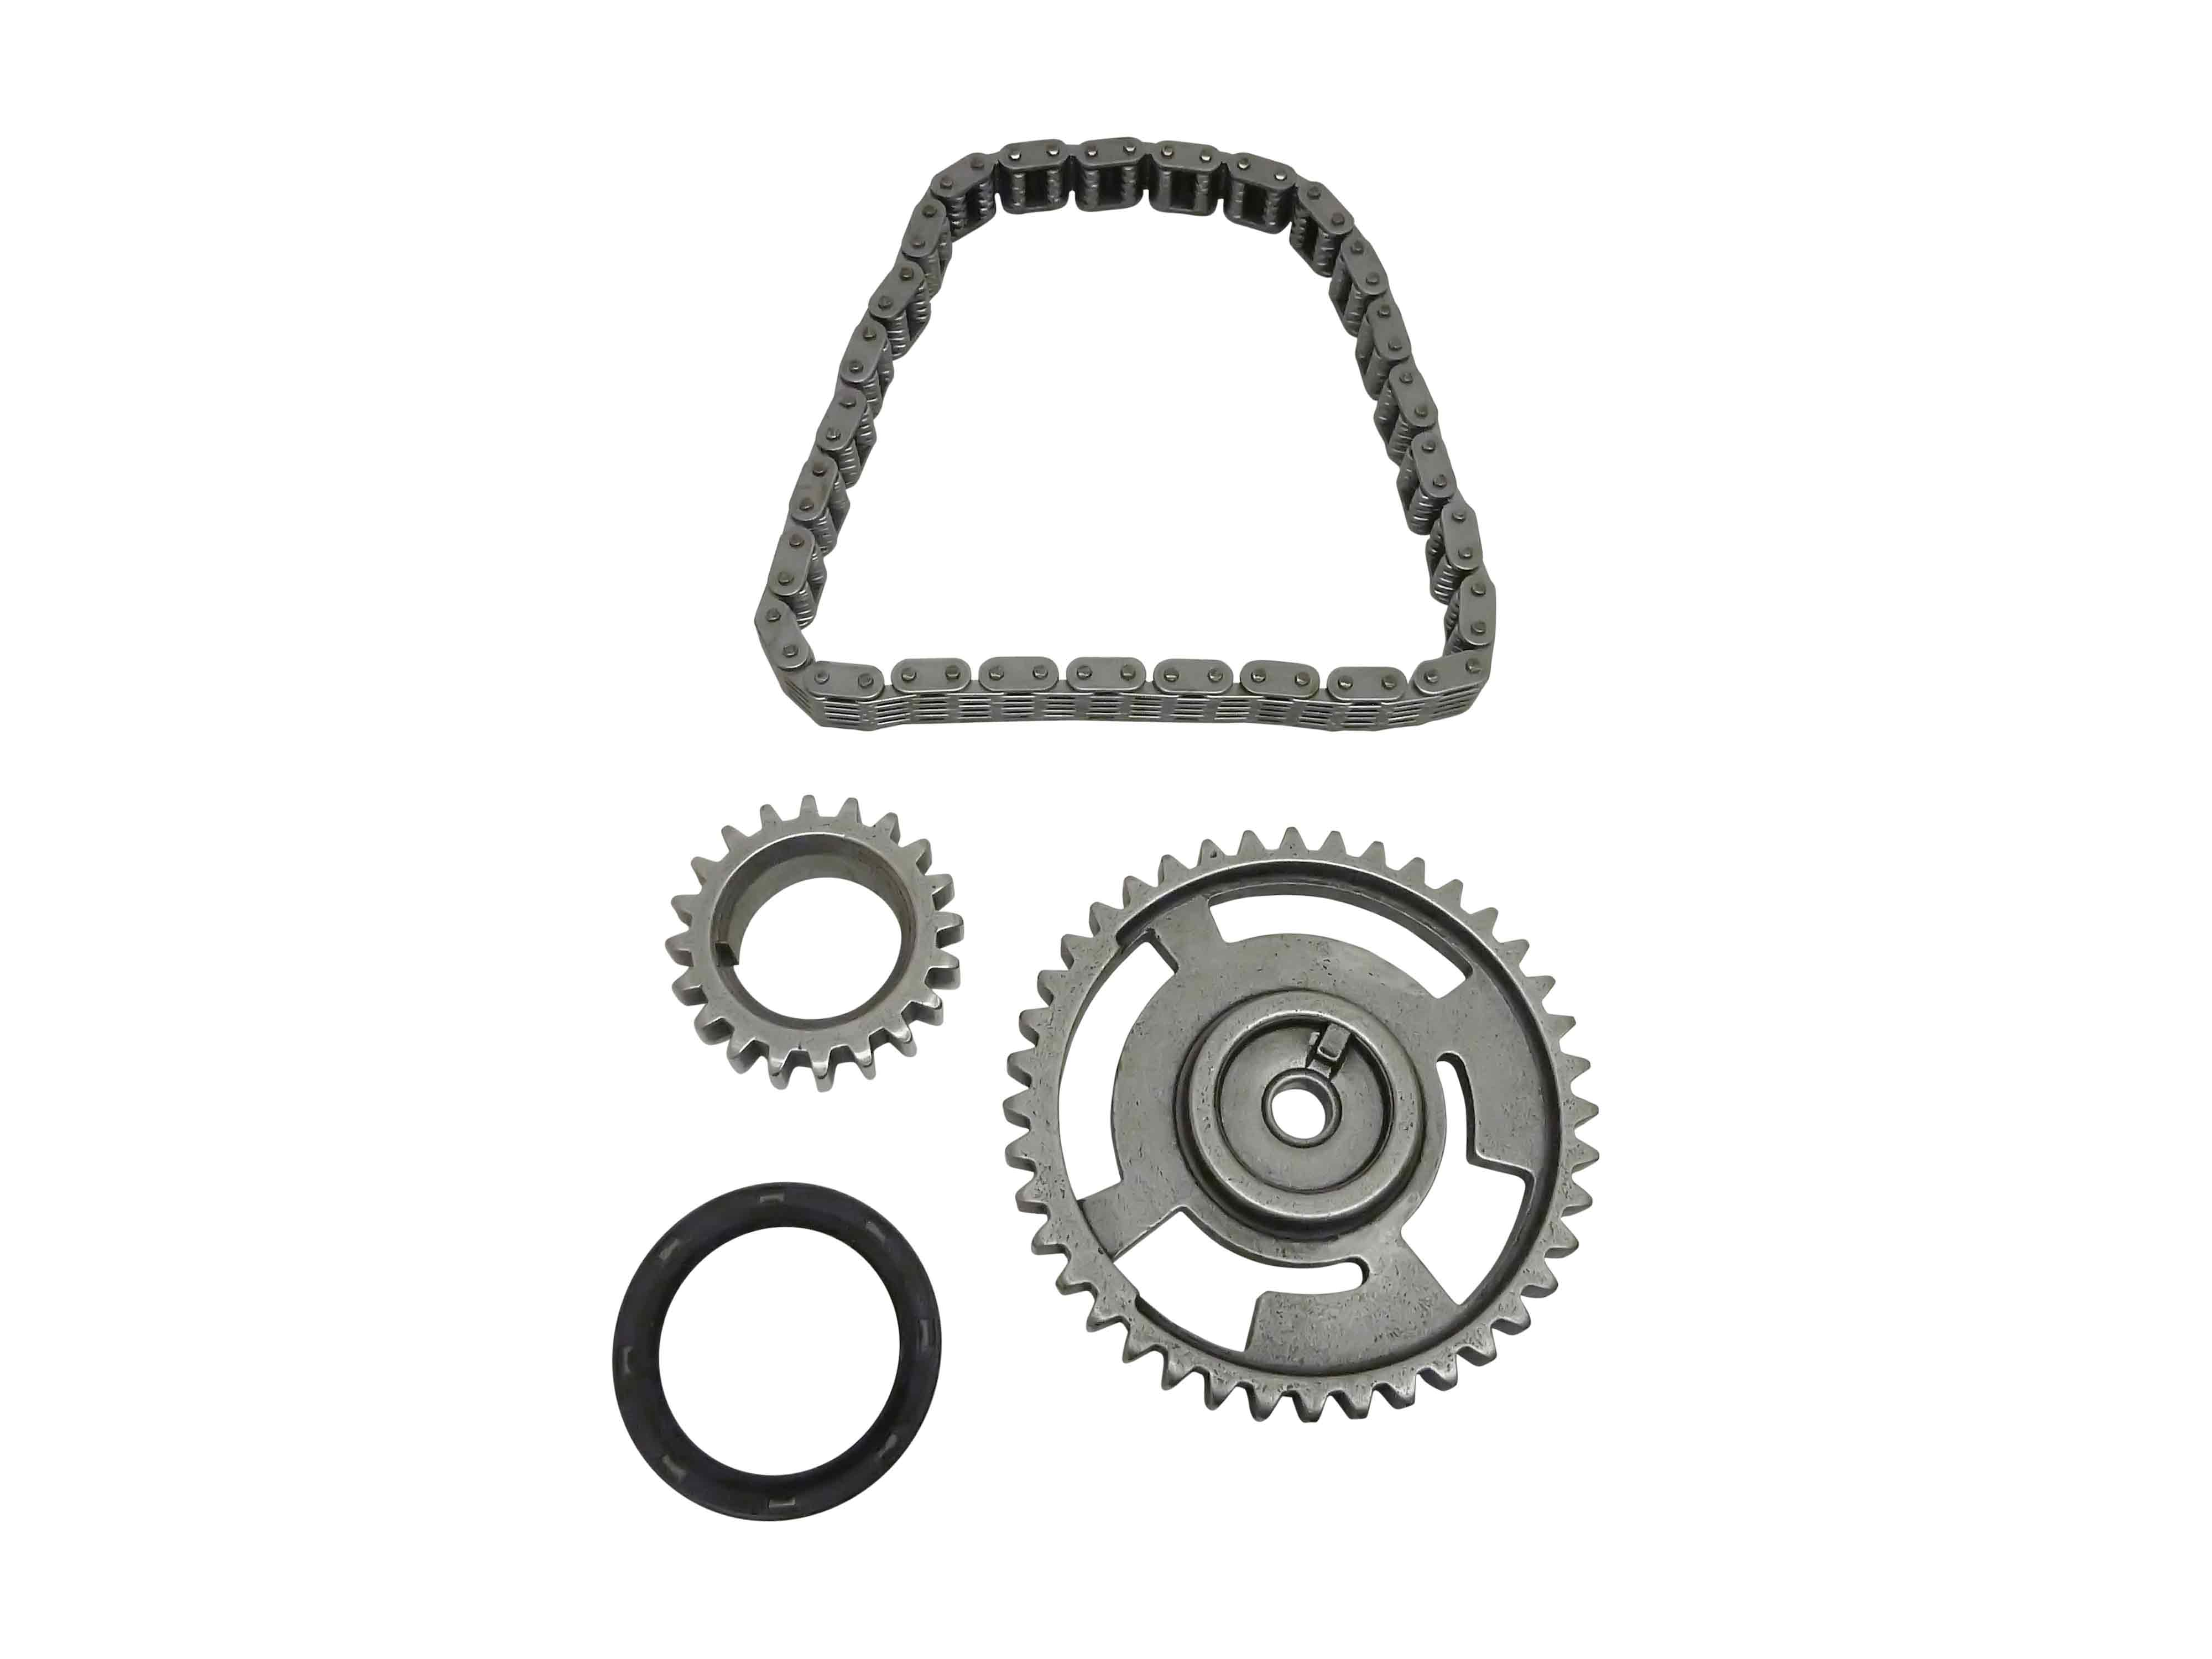 Timing Chain Amp Gear Set V8 For Land Rover Discovery 2 And